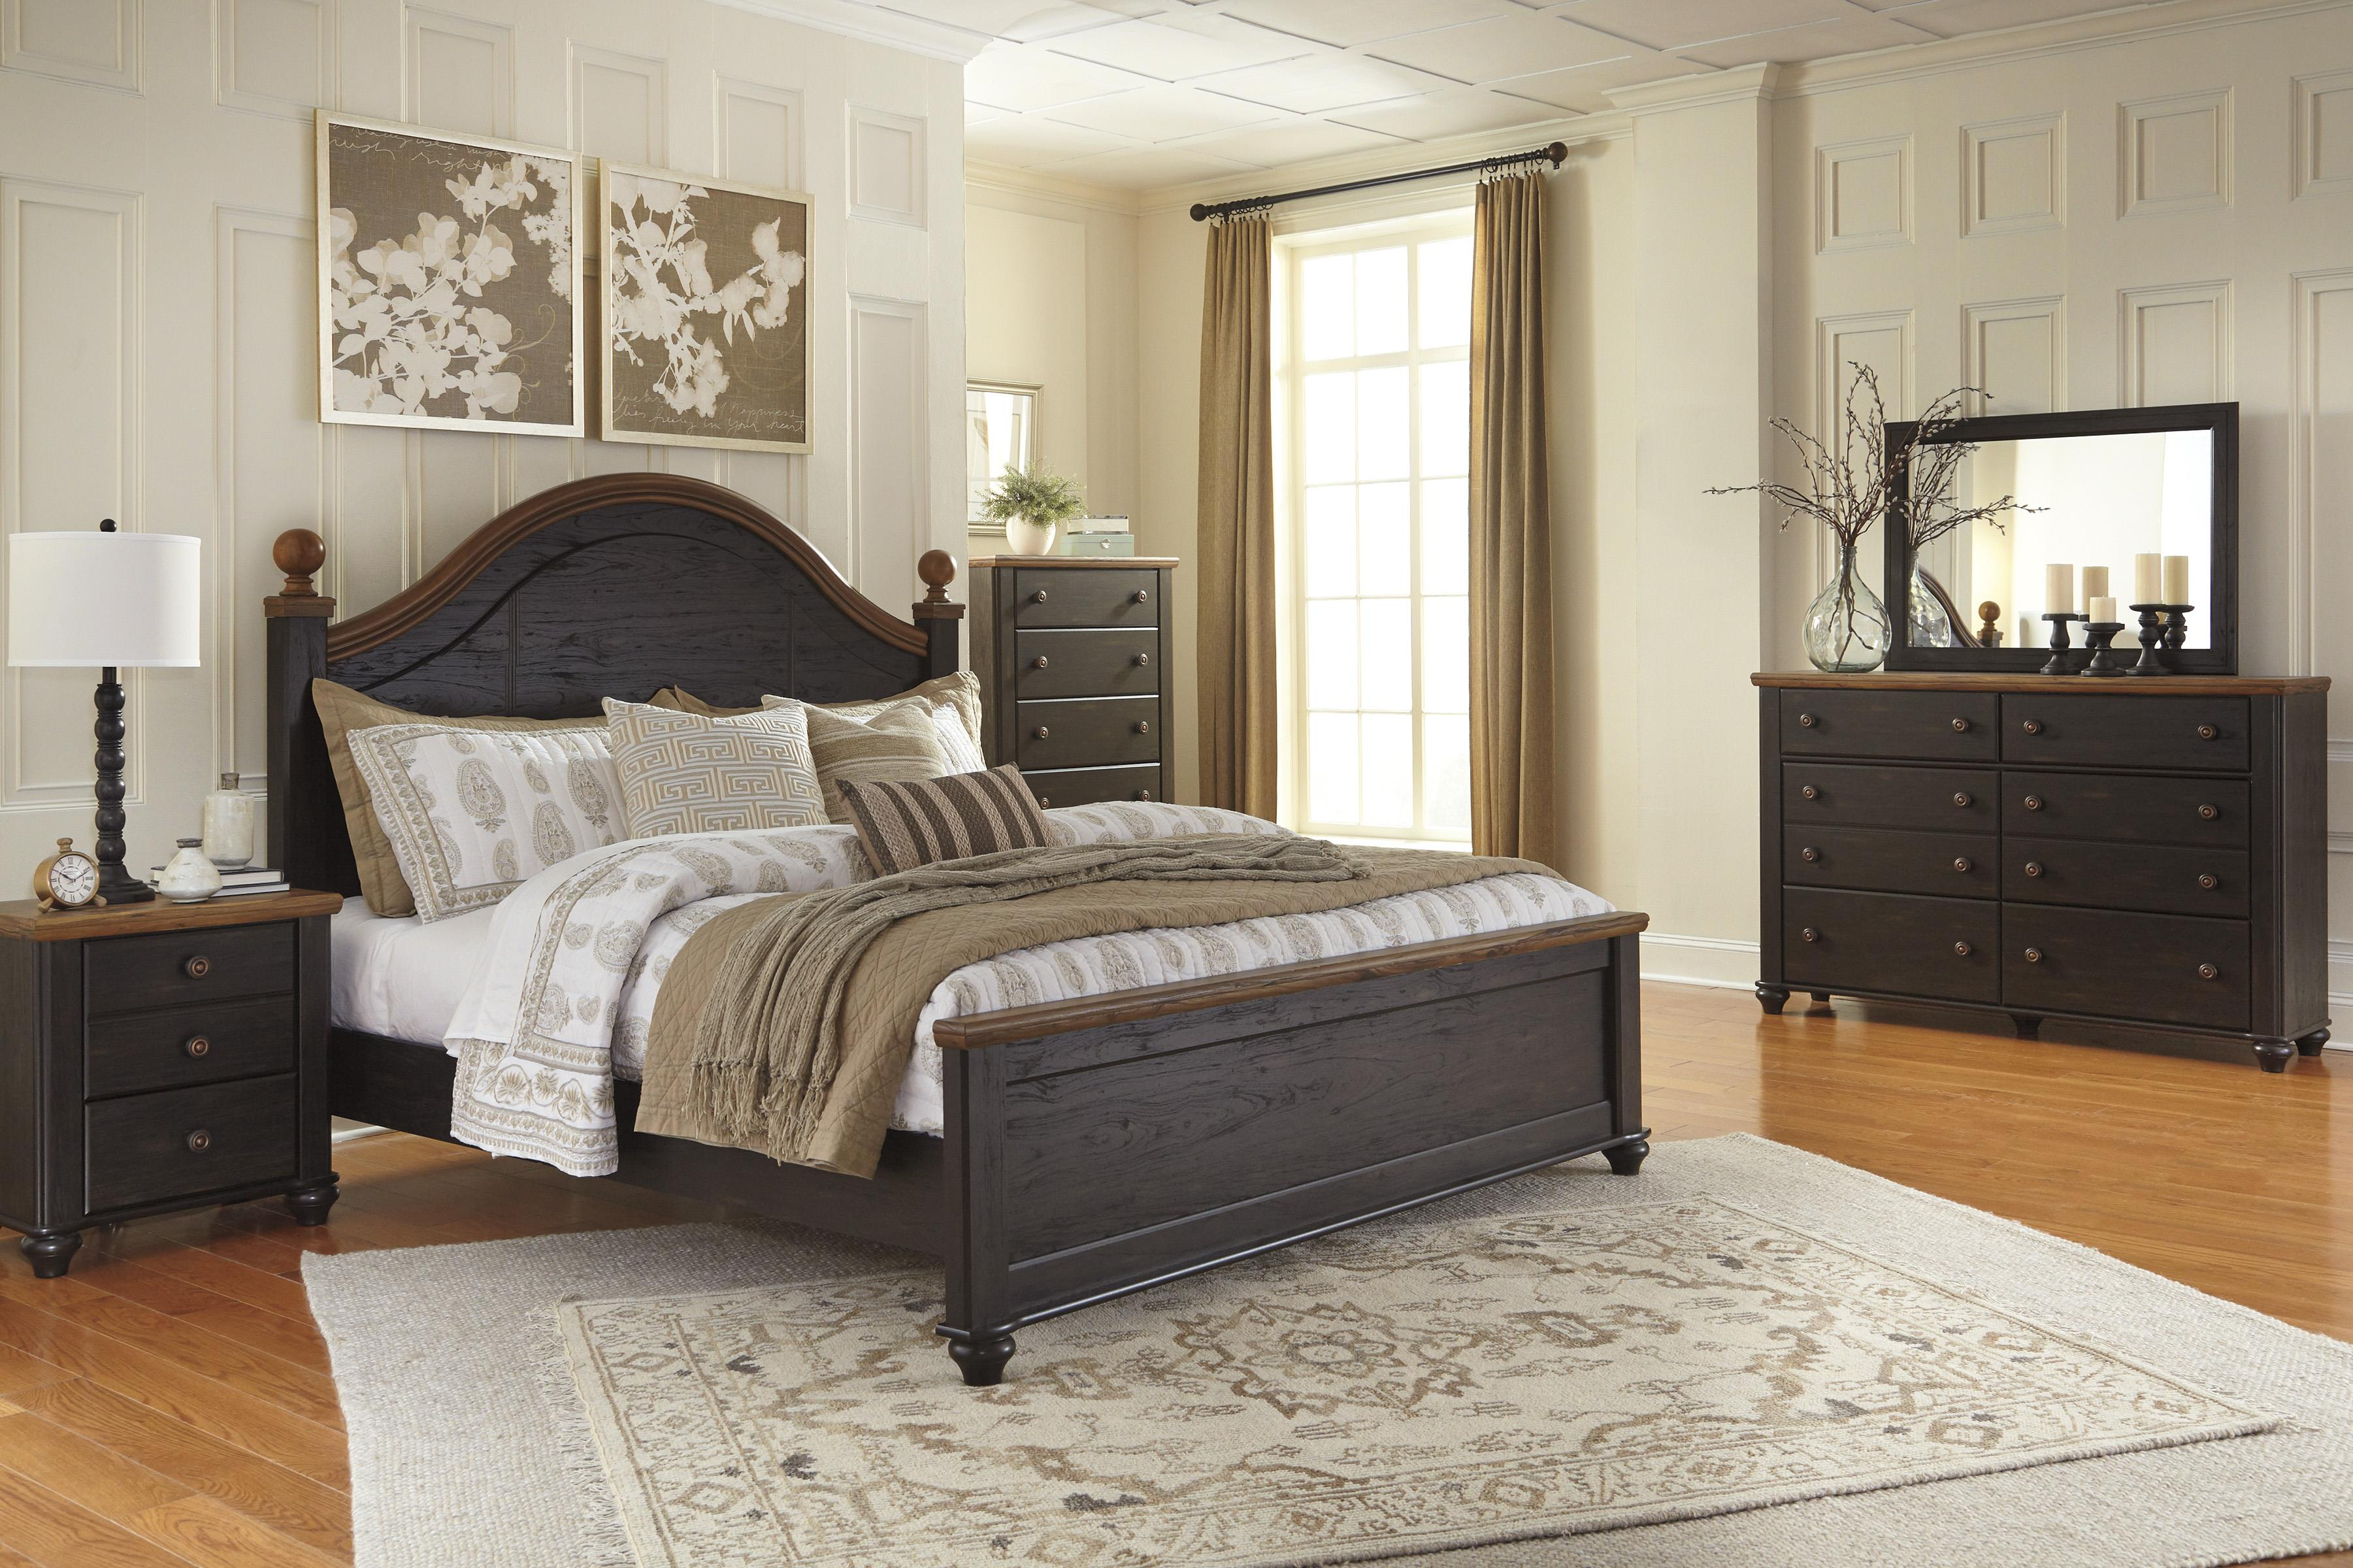 Signature Design by Ashley Maxington Queen Bedroom Group - Item Number: B220 Q Bedroom Group 2